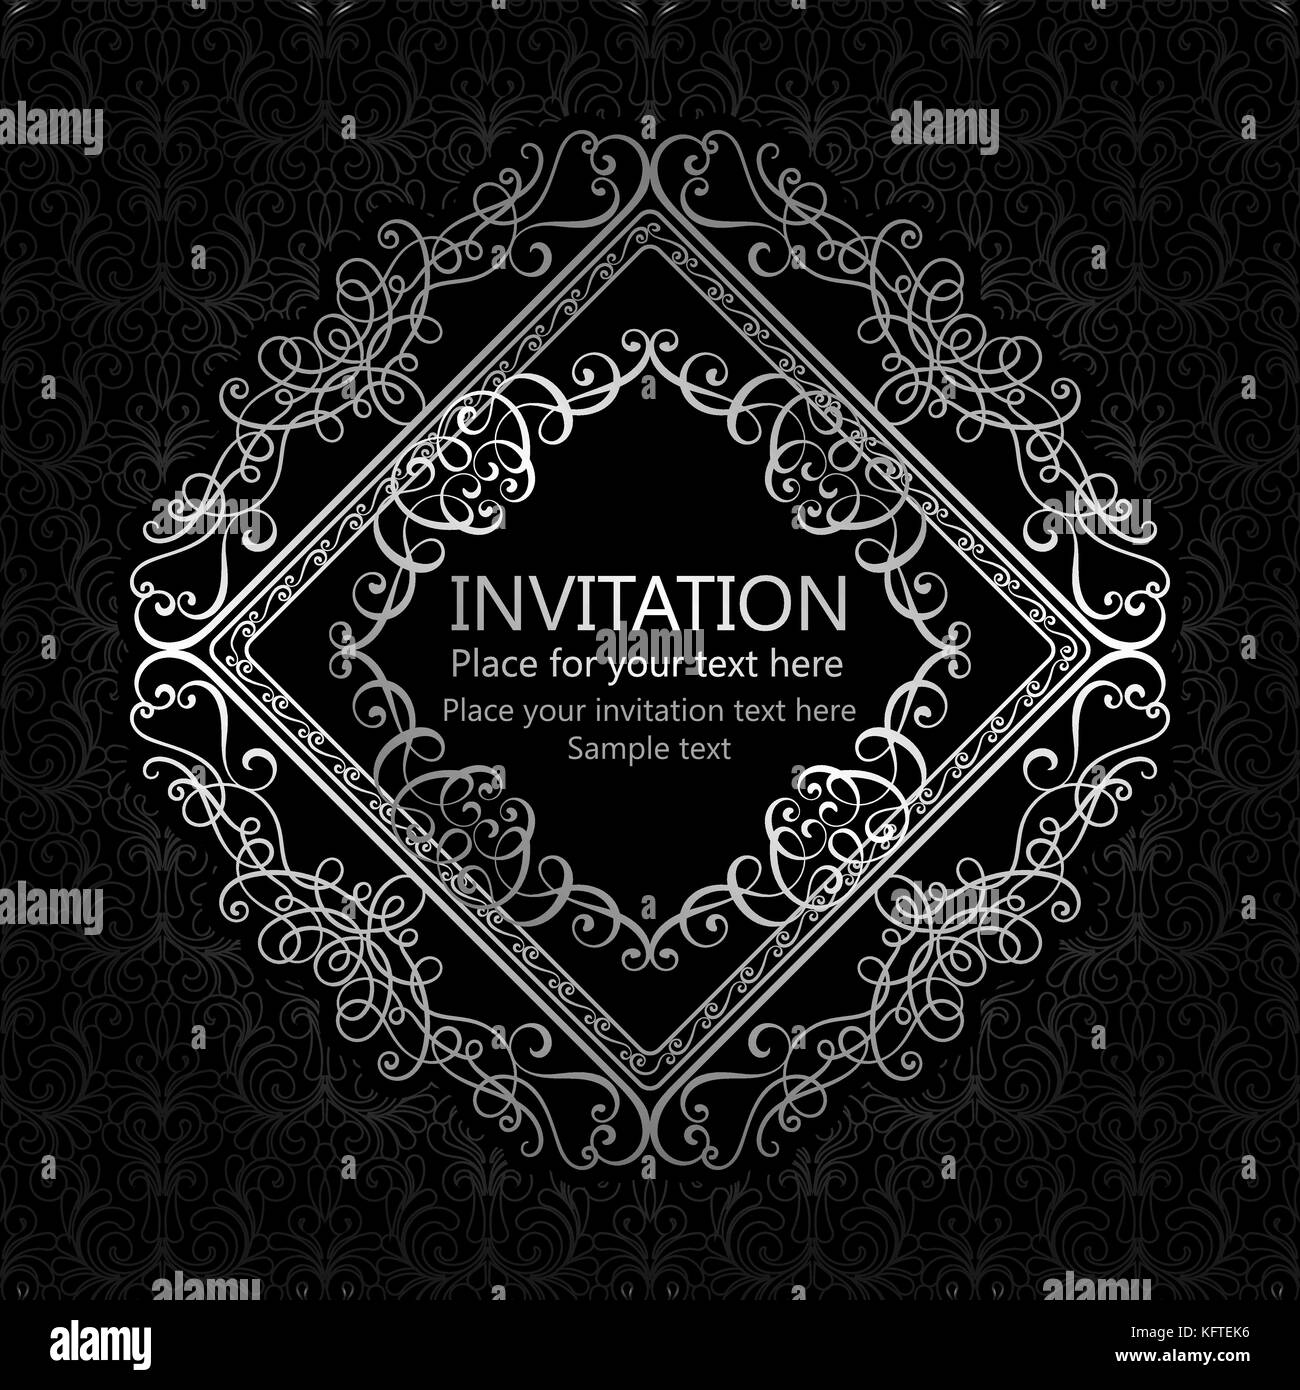 Abstract Background With Calligraphic Luxury Silver Flourishes And Vintage Frame Victorian Bannerwallpaper Ornaments Invitation Card Baroque Style